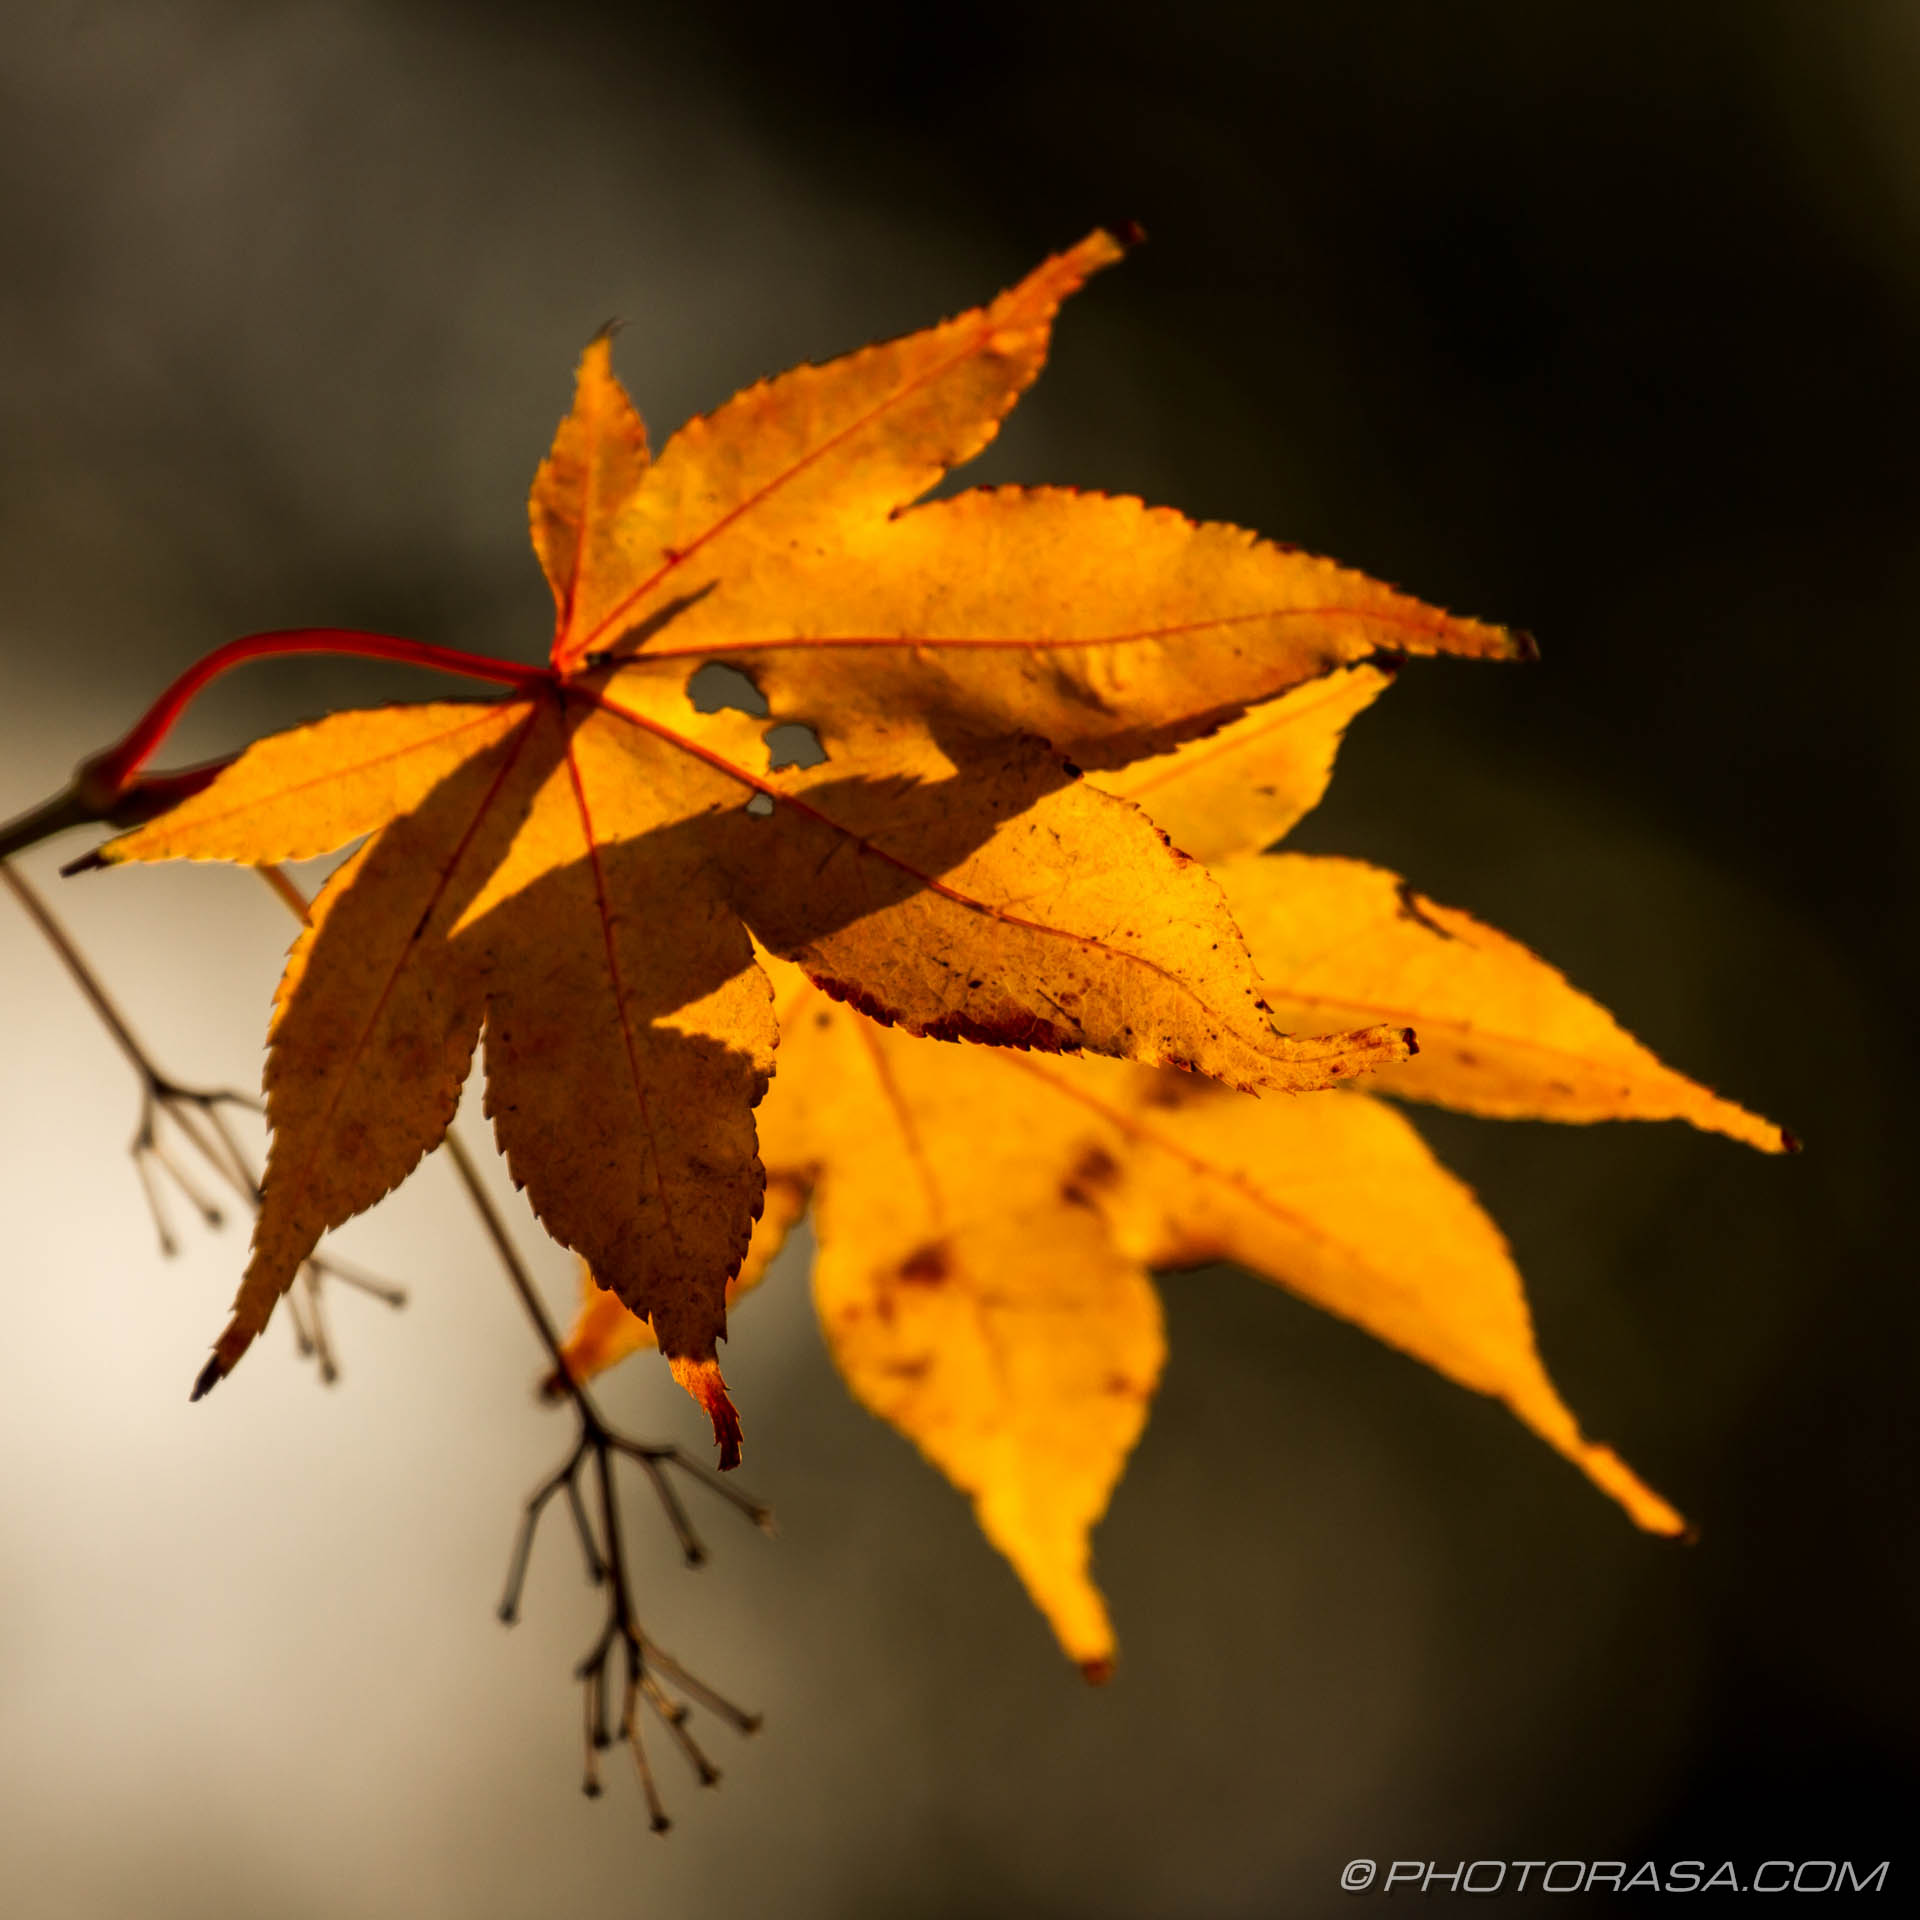 https://photorasa.com/leaves/orange-and-red-maple-leaves/